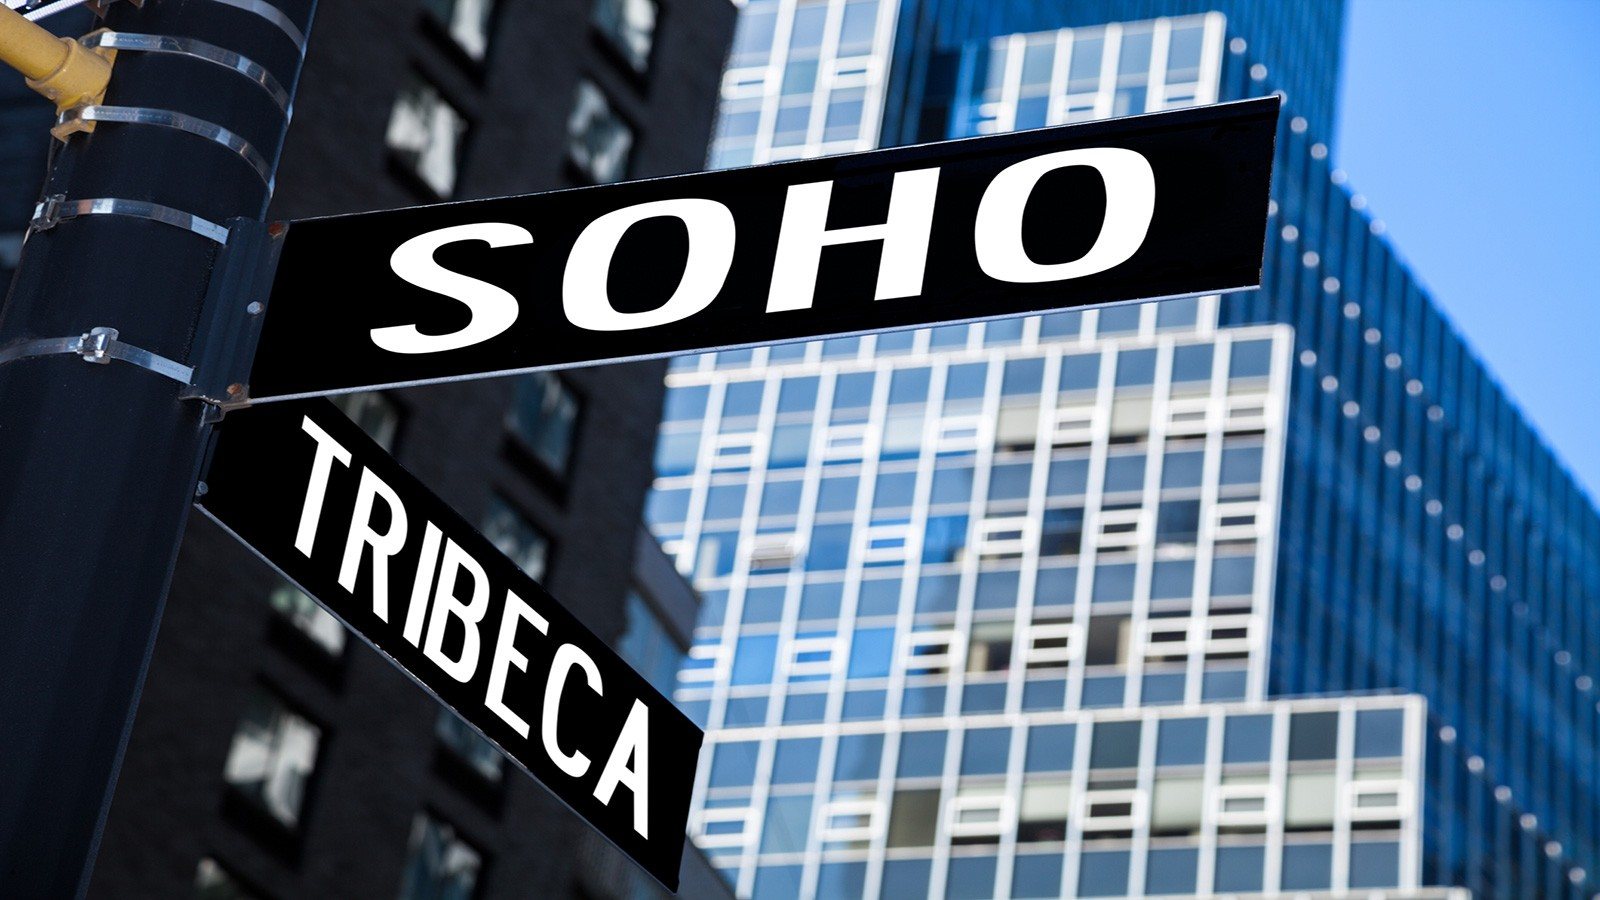 SoHo sign in New York